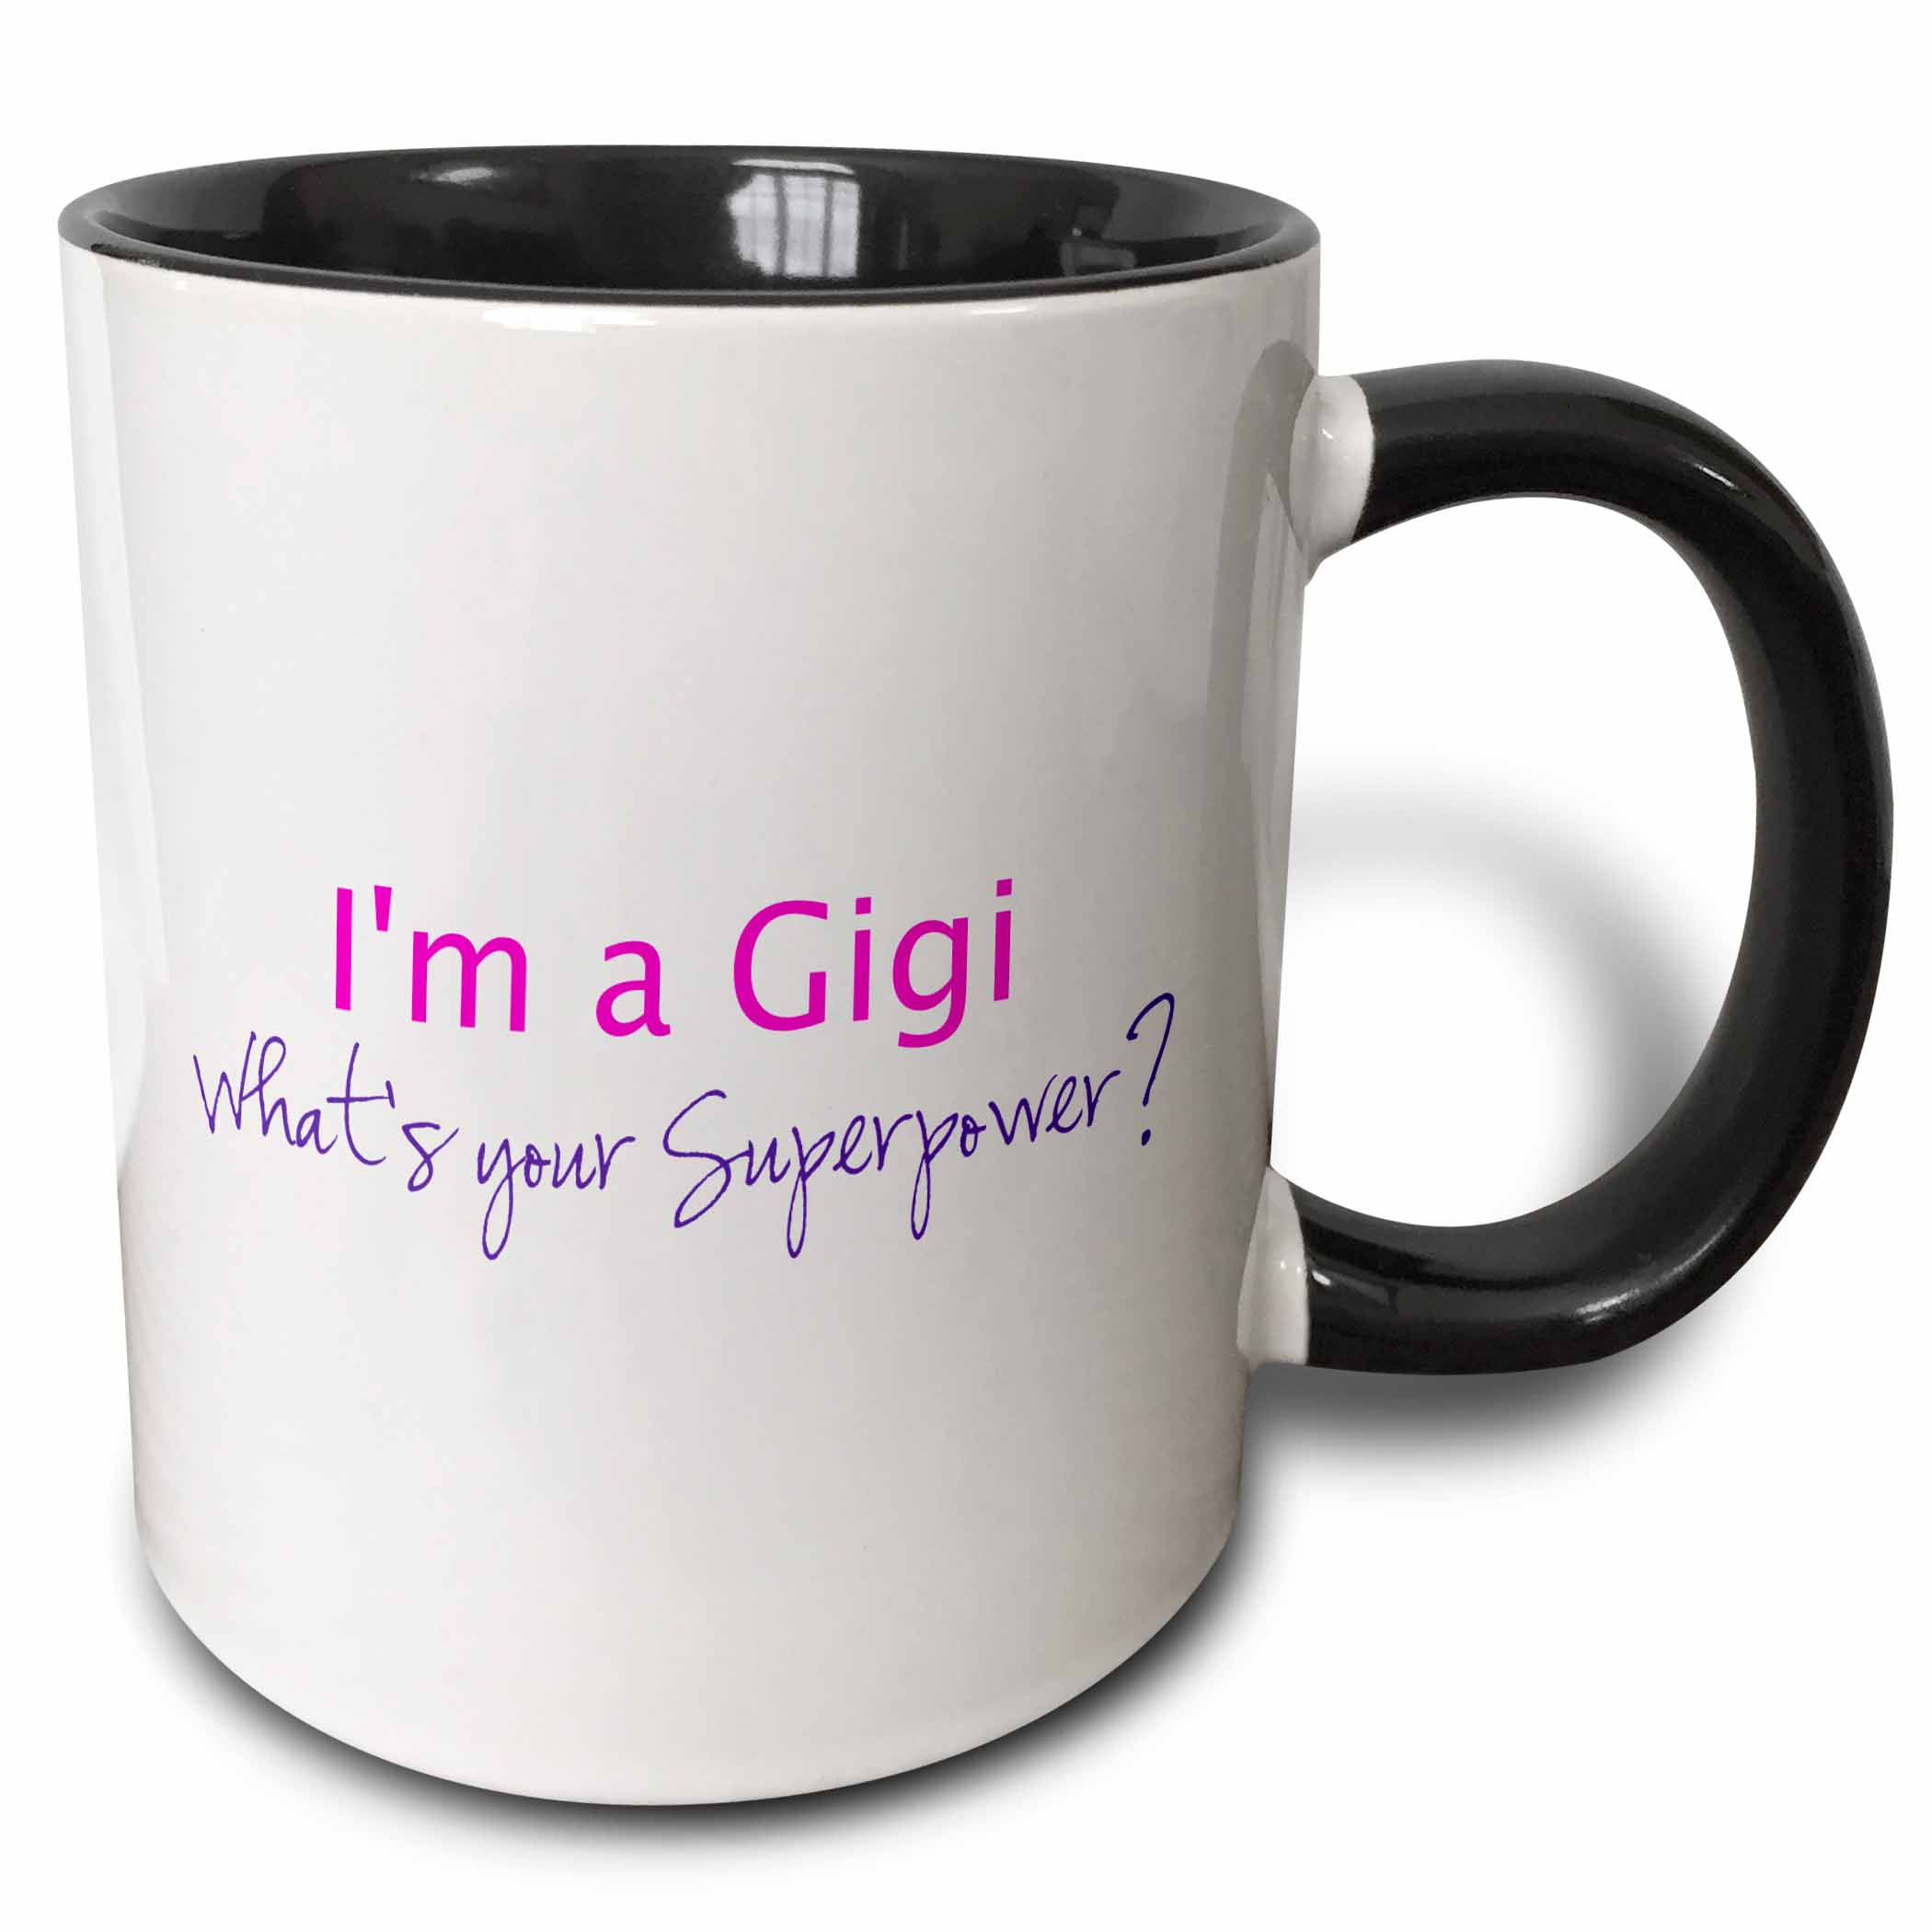 3dRose Im a Gigi - Whats your Superpower - hot pink - funny gift for grandma, Two Tone Black Mug, 11oz